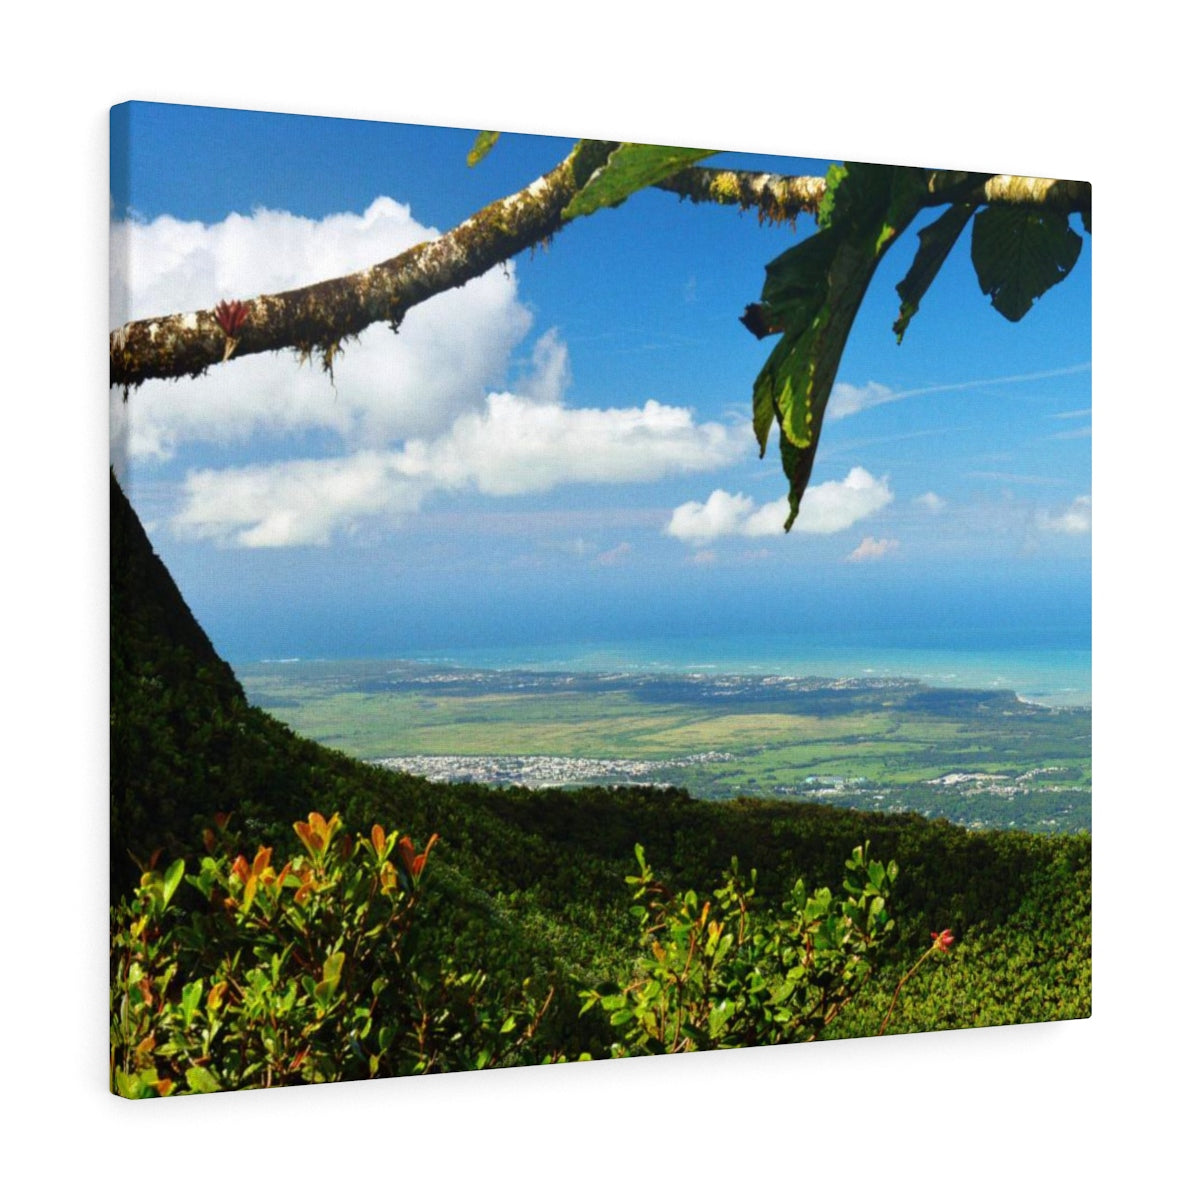 Lucky clear day in Tres Picachos near El Yunque at 3,175 feet - El Yunque rainforest - Canvas Gallery Wraps